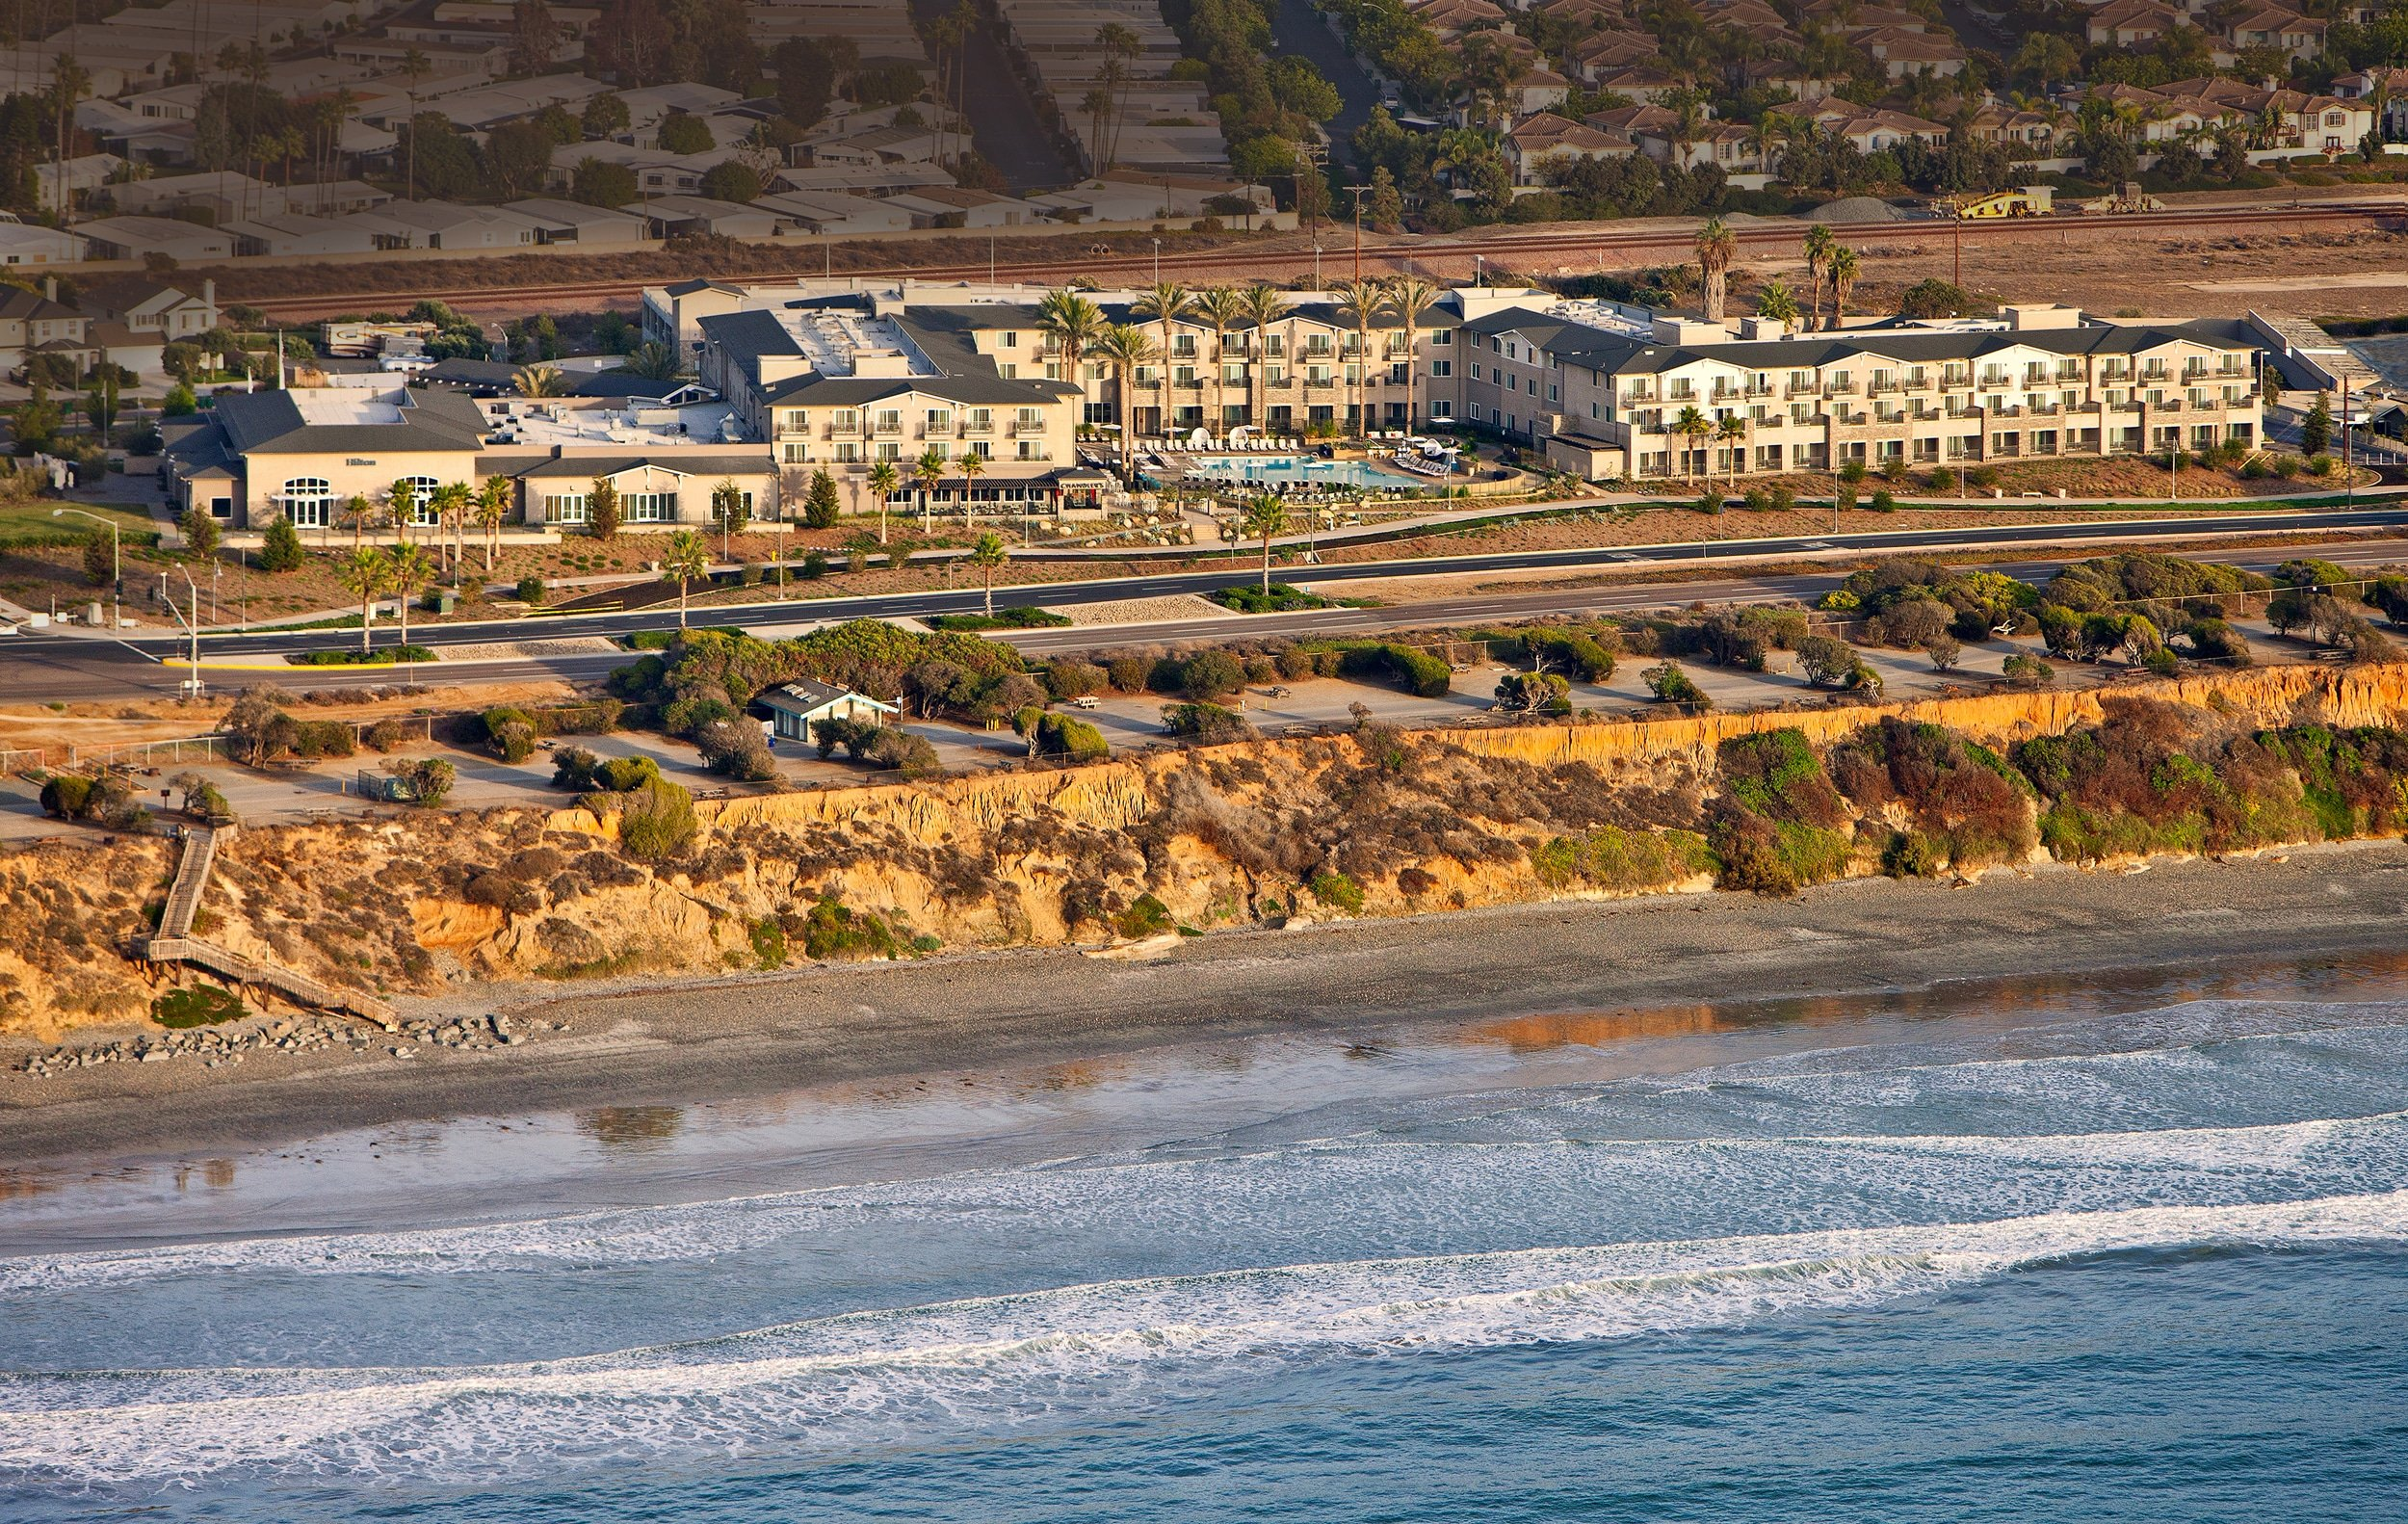 Aerial view of the ocean and entire Cape Rey Carlsbad, a Hilton Resort.